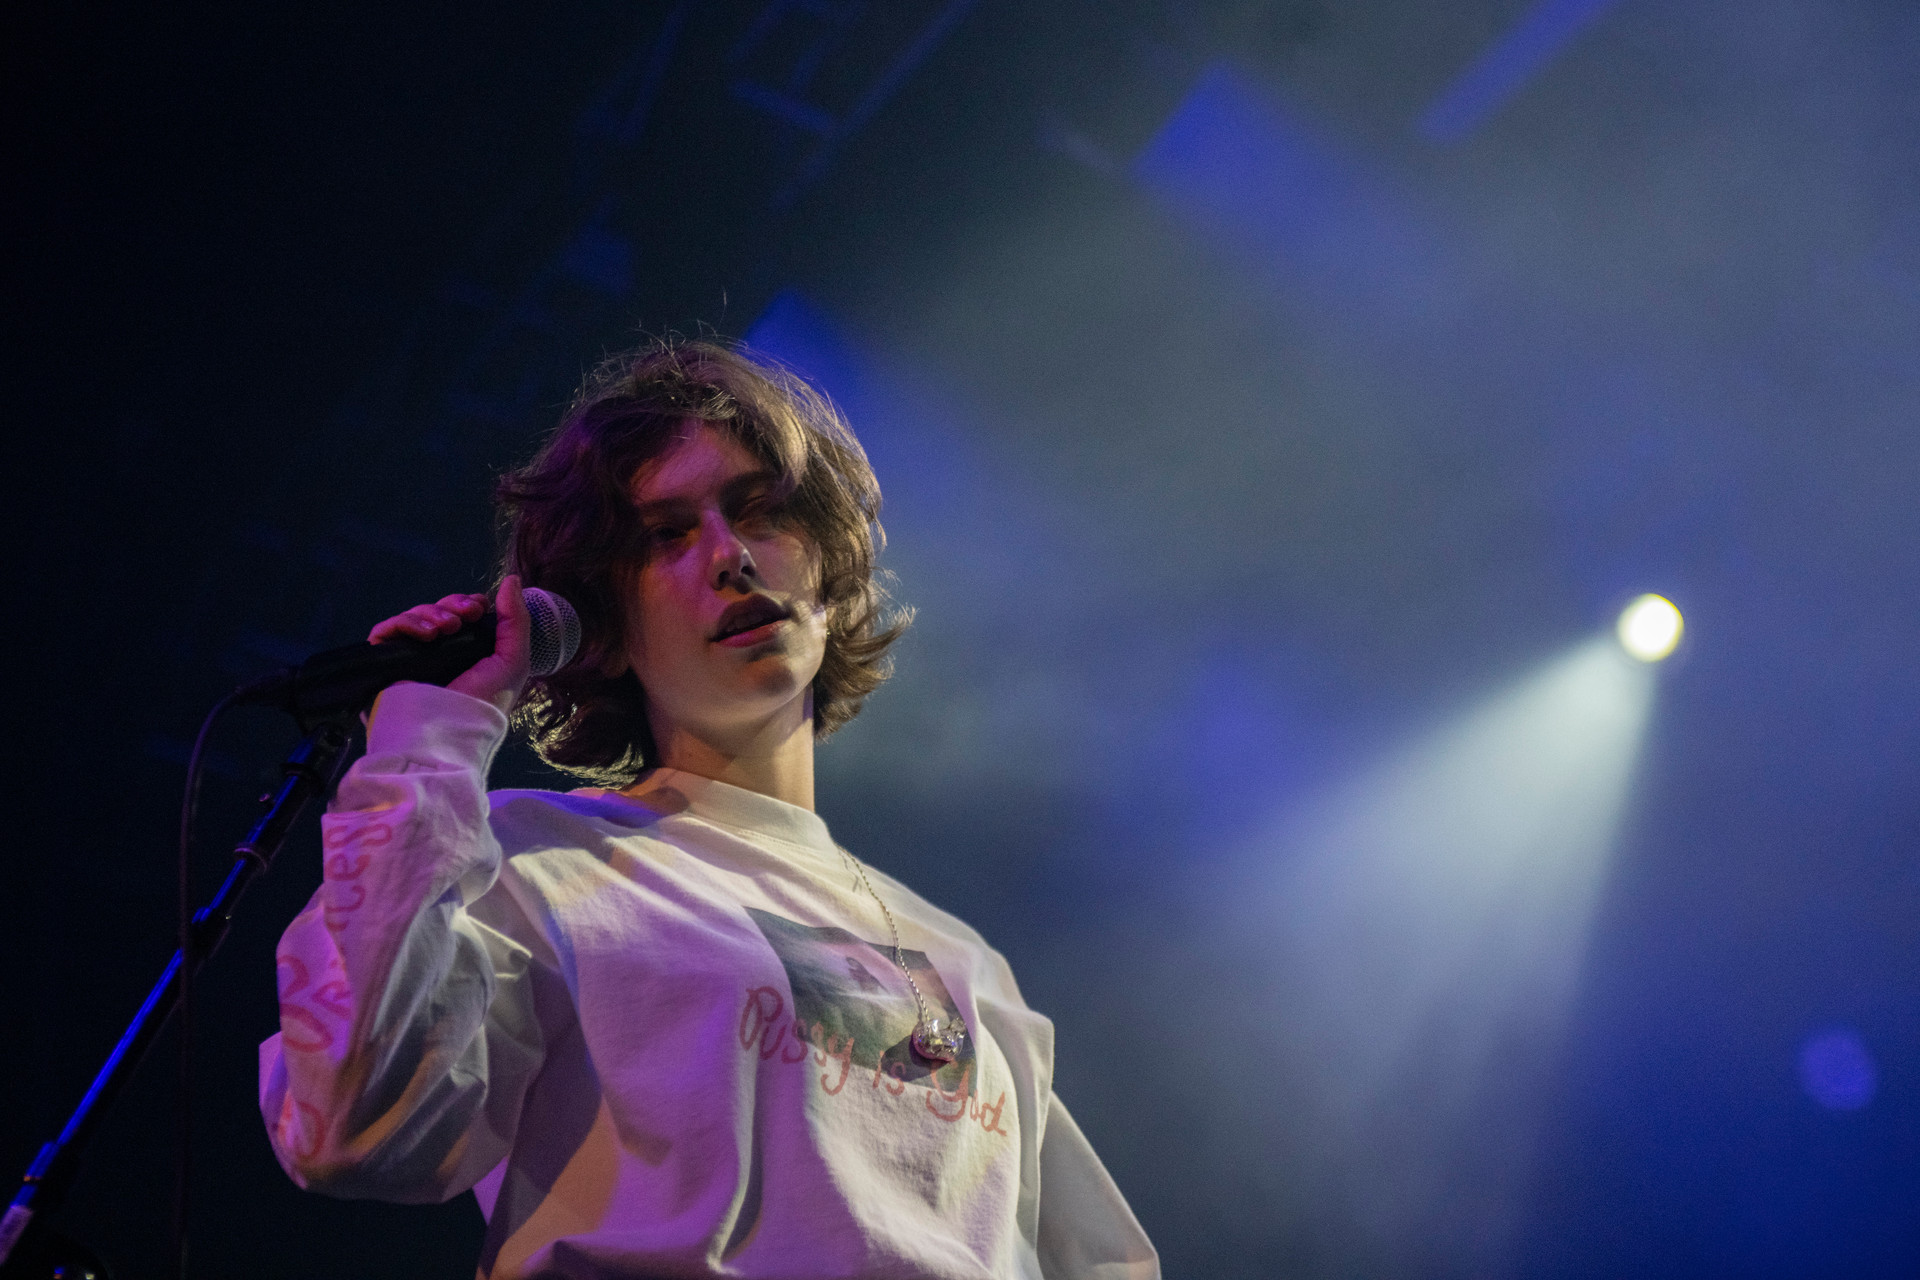 King Princess